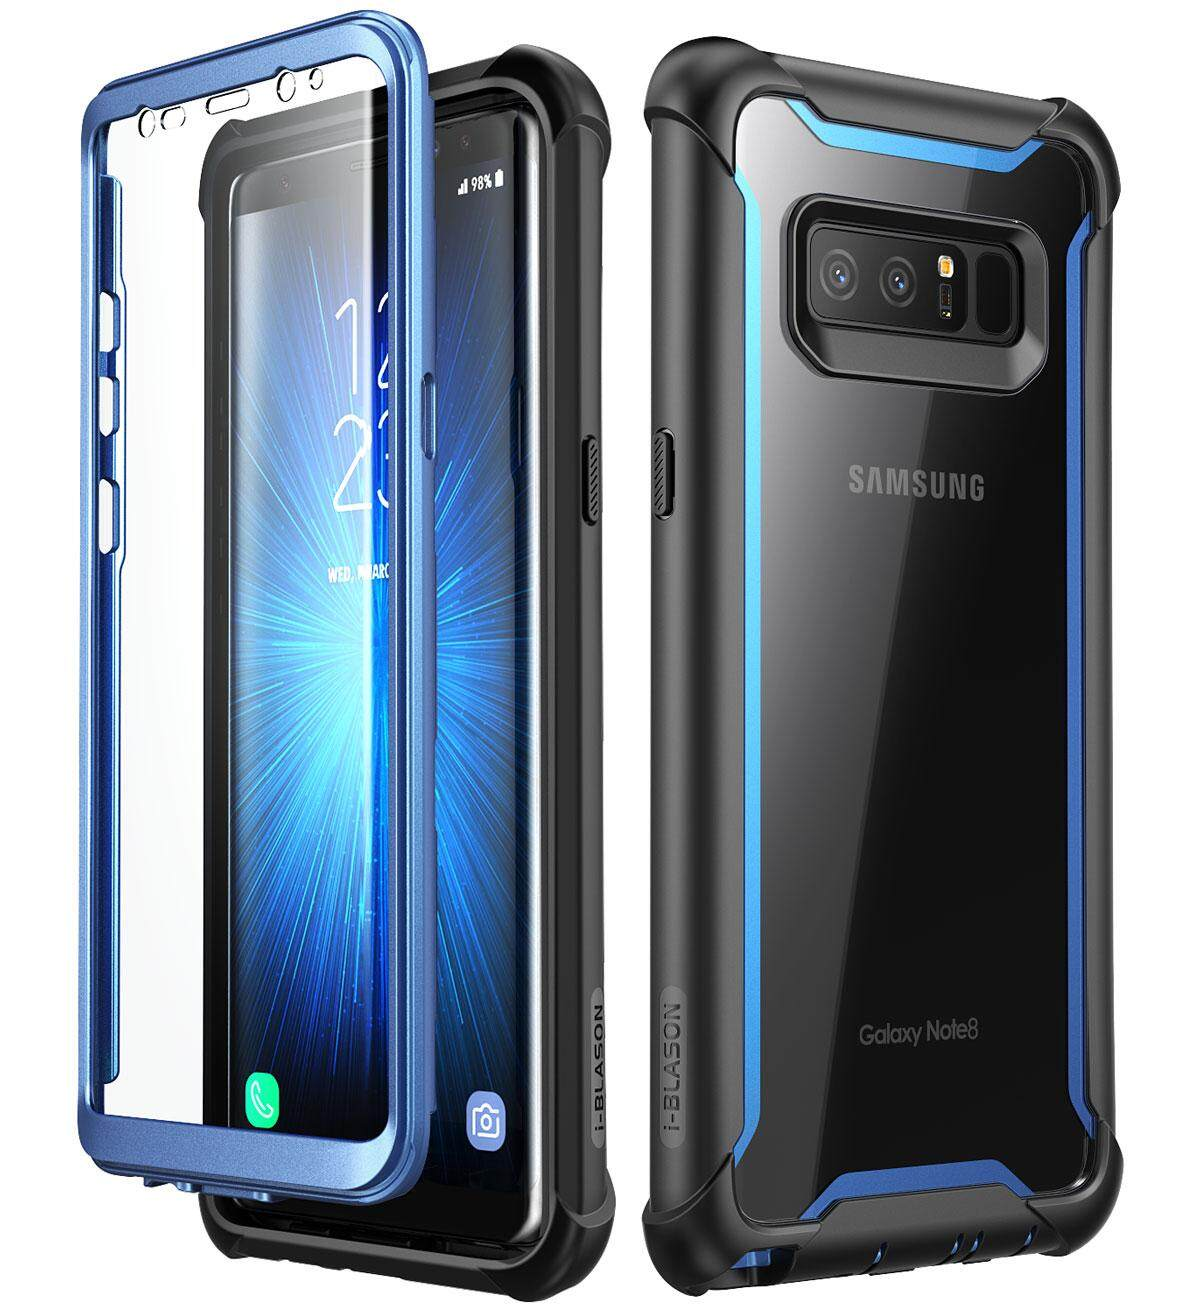 Samsung Galaxy Note 8 casing